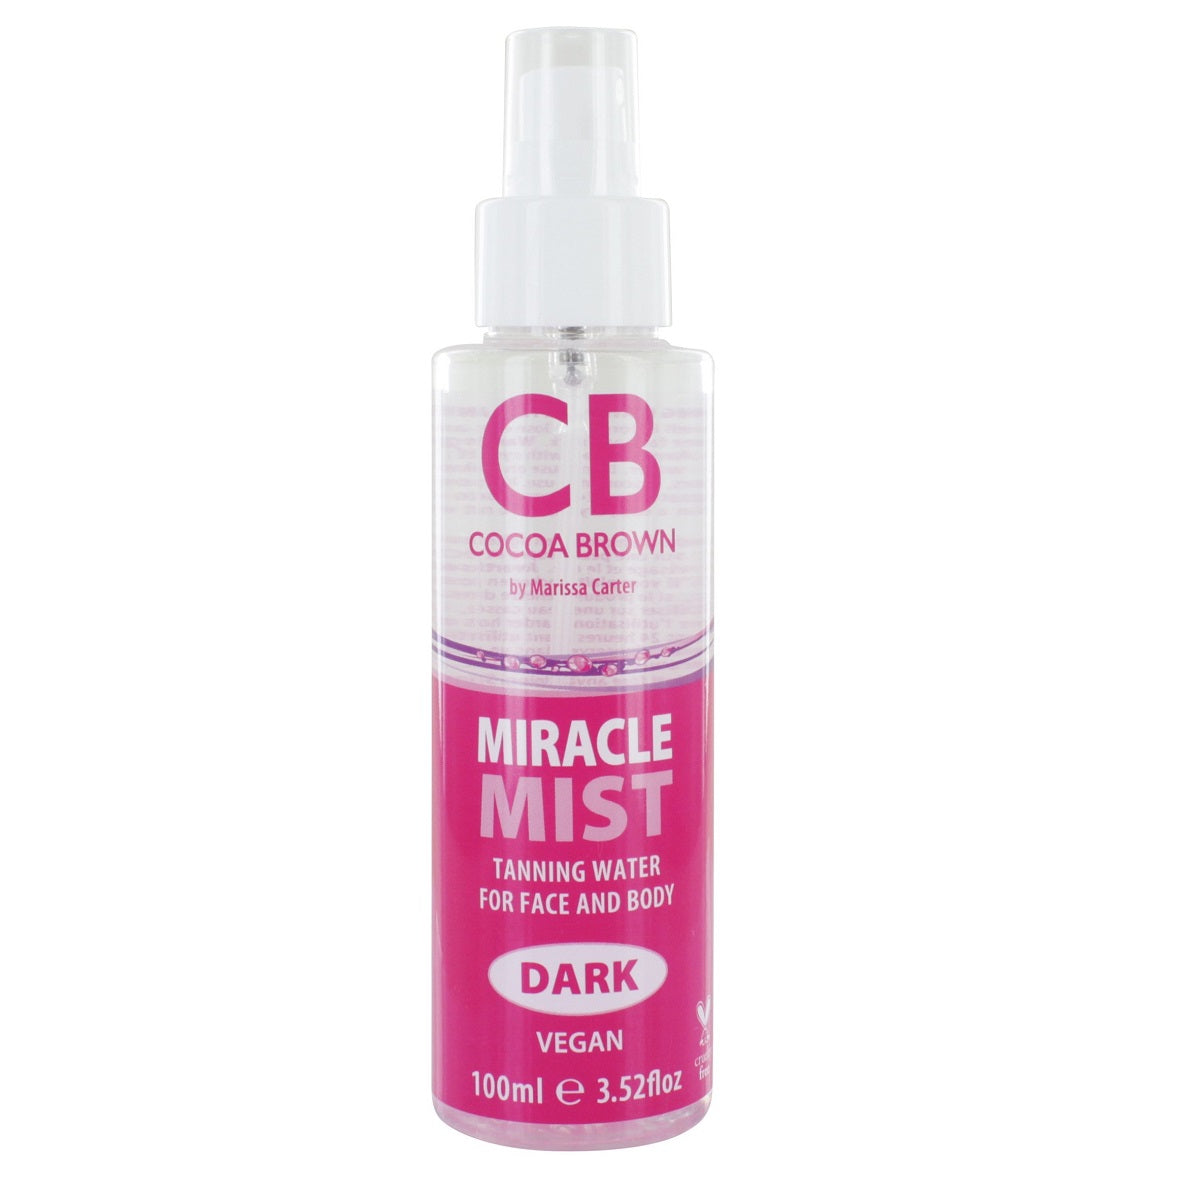 Cocoa Brown Miracle Mist Dark